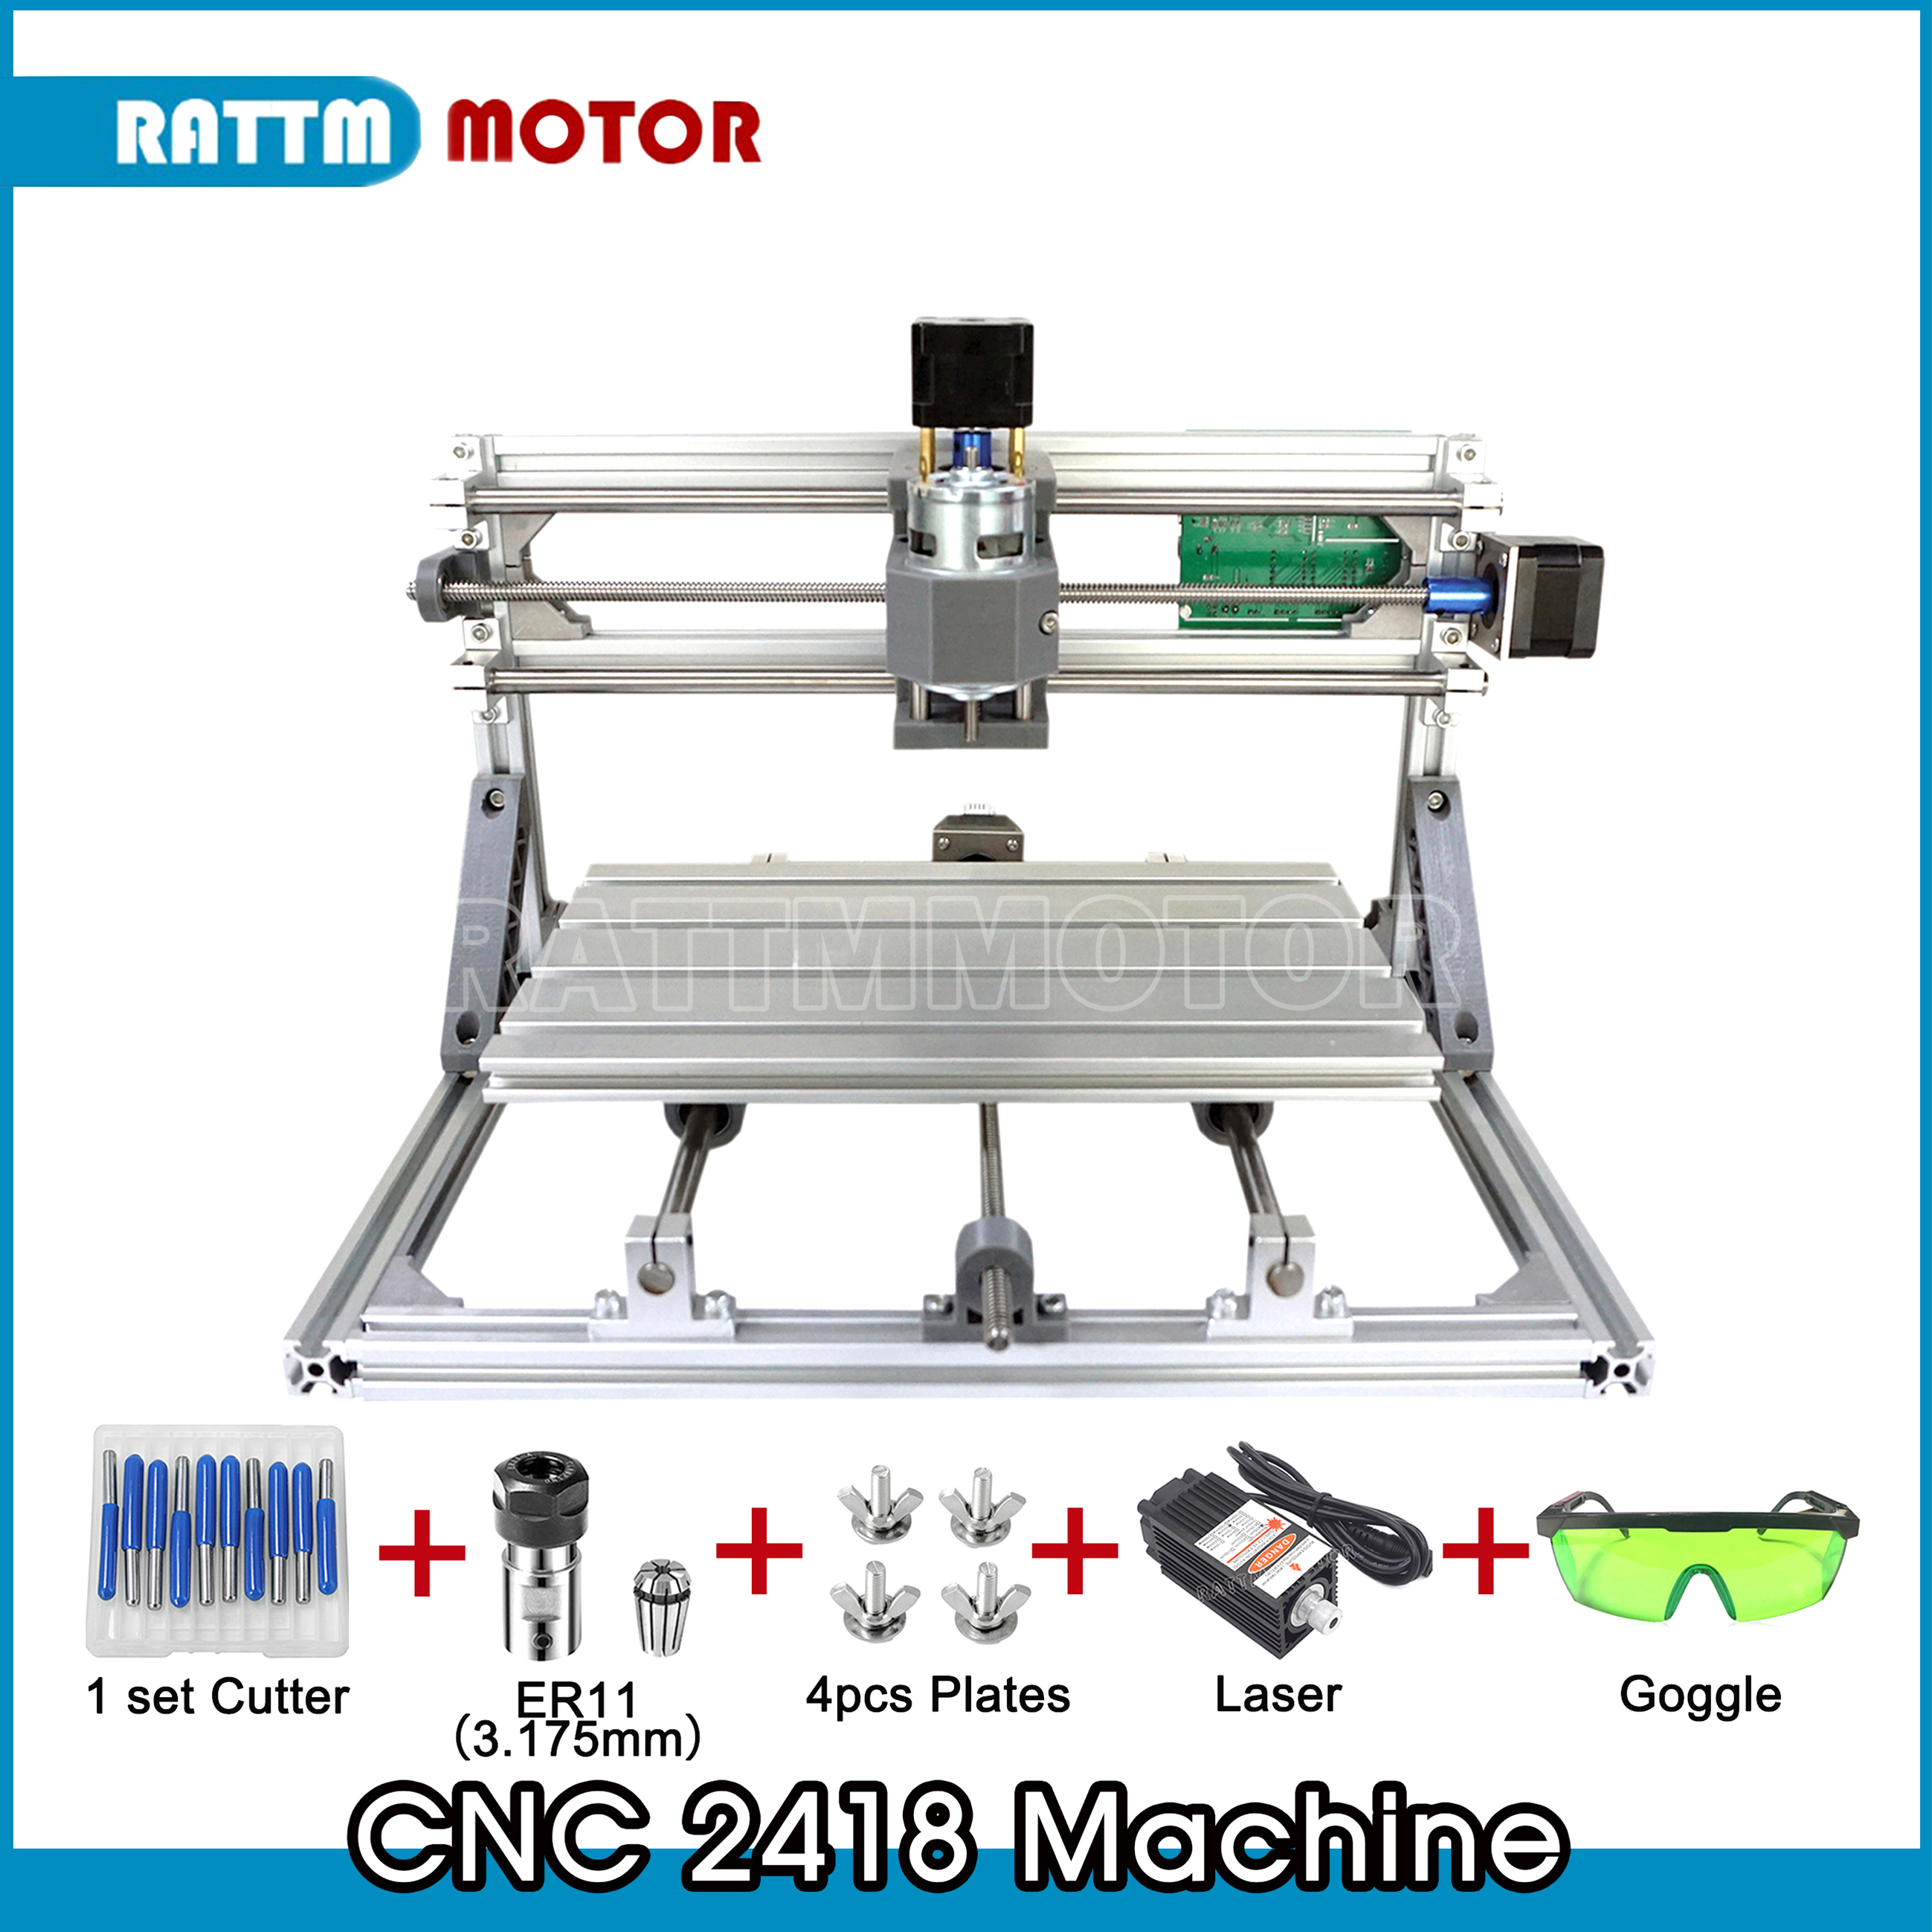 CNC 2418,diy Cnc Engraving Machine,mini Pcb Milling Machine,Wood Carving Machine,cnc Router,cnc2418